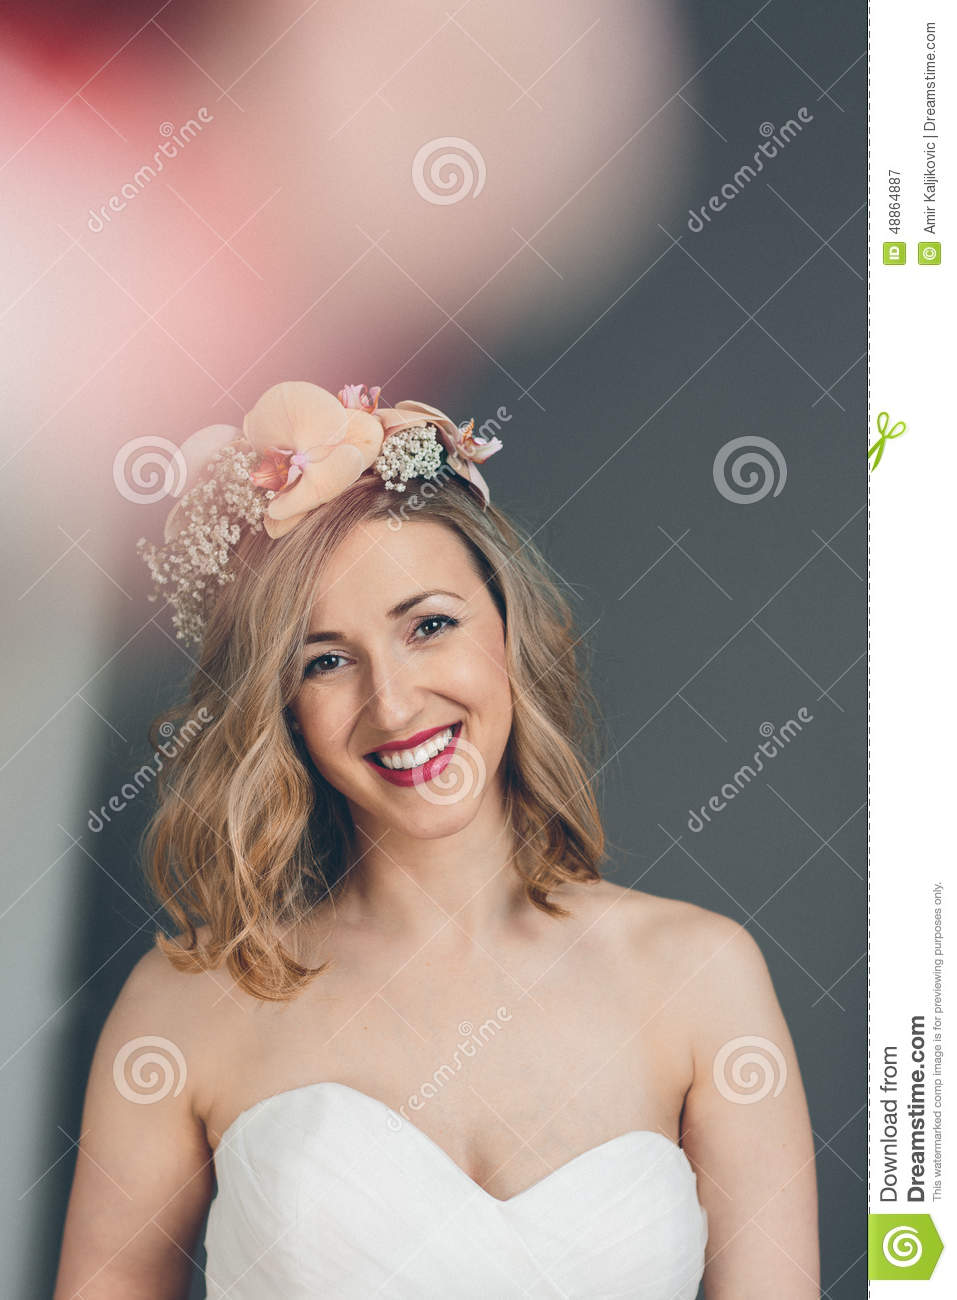 The Expression On The Bride 105